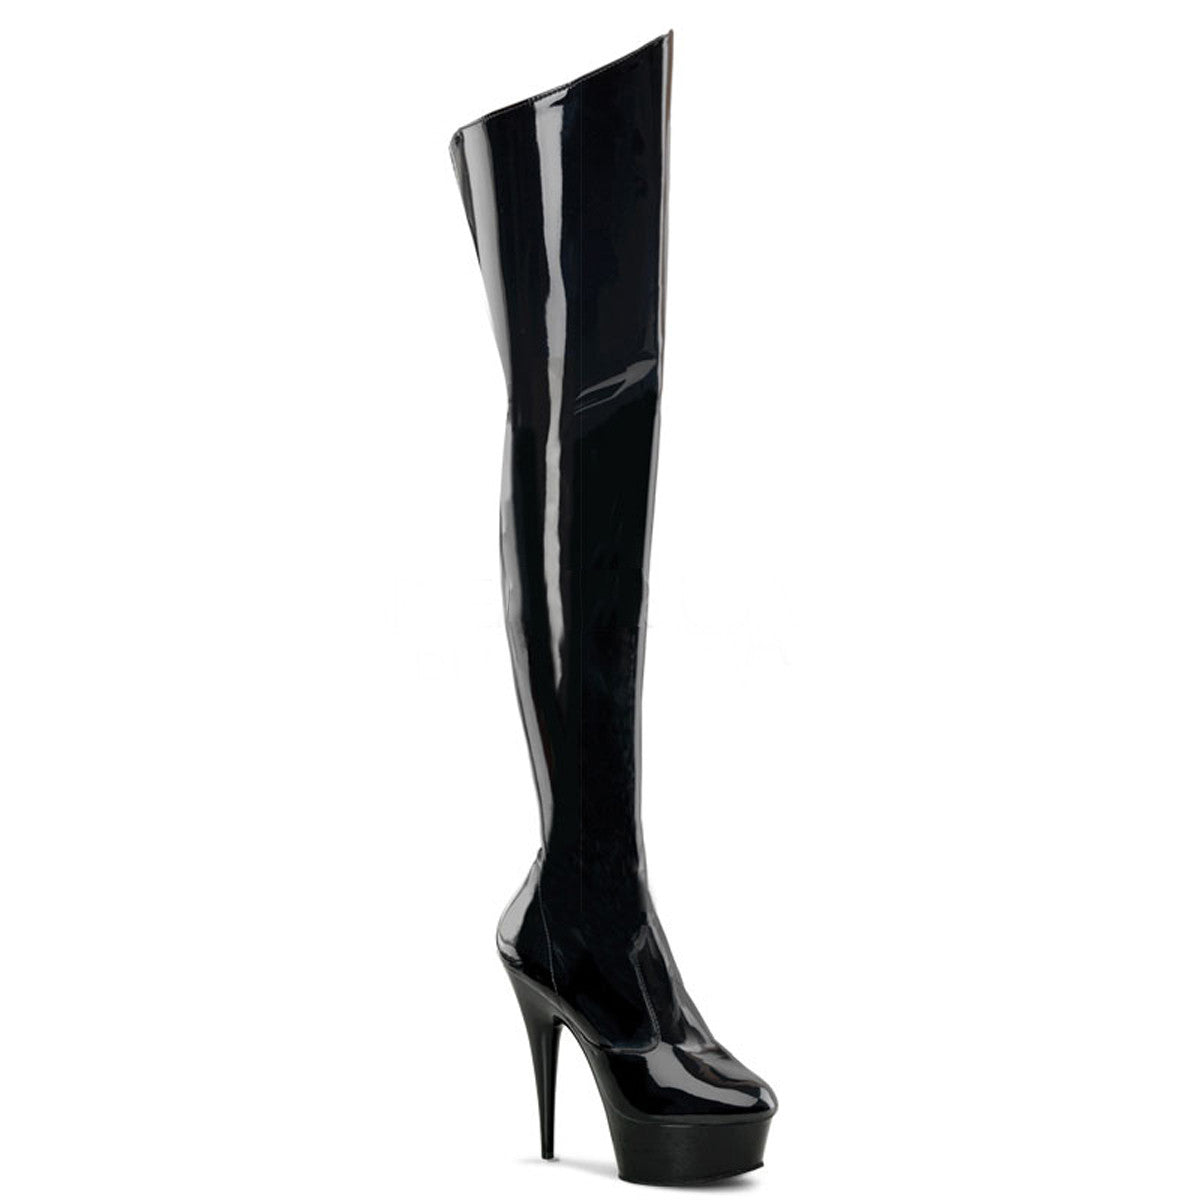 Black Patent Stiletto Thigh-High Boots (Delight 3010)